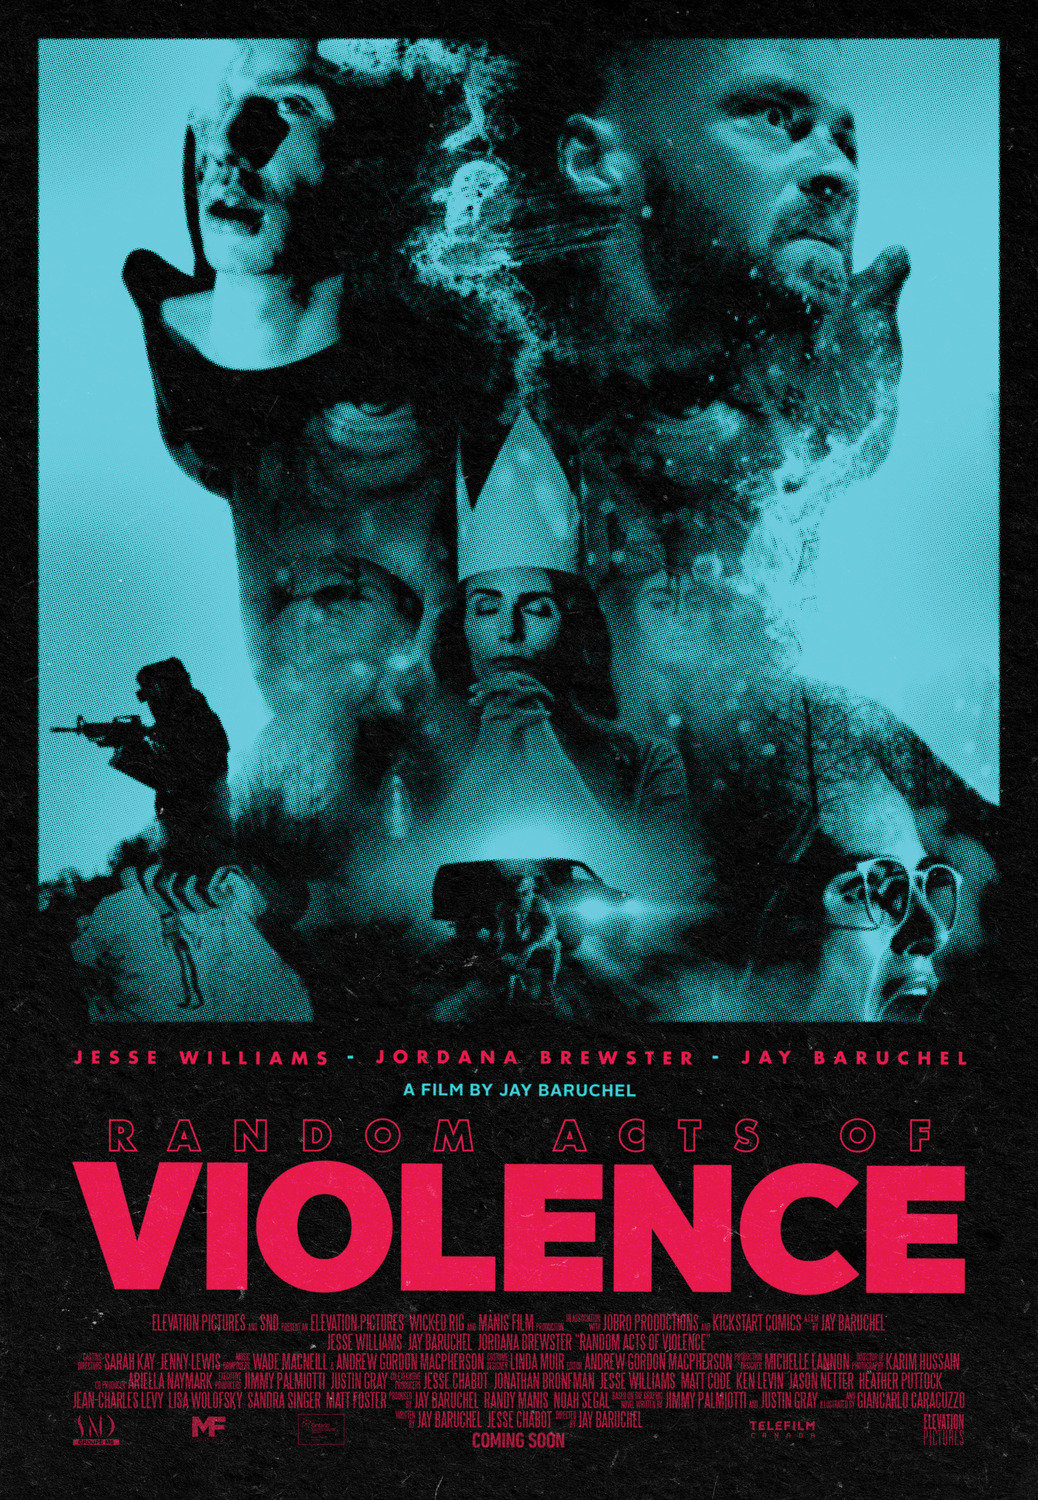 Random Acts of Violence poster image